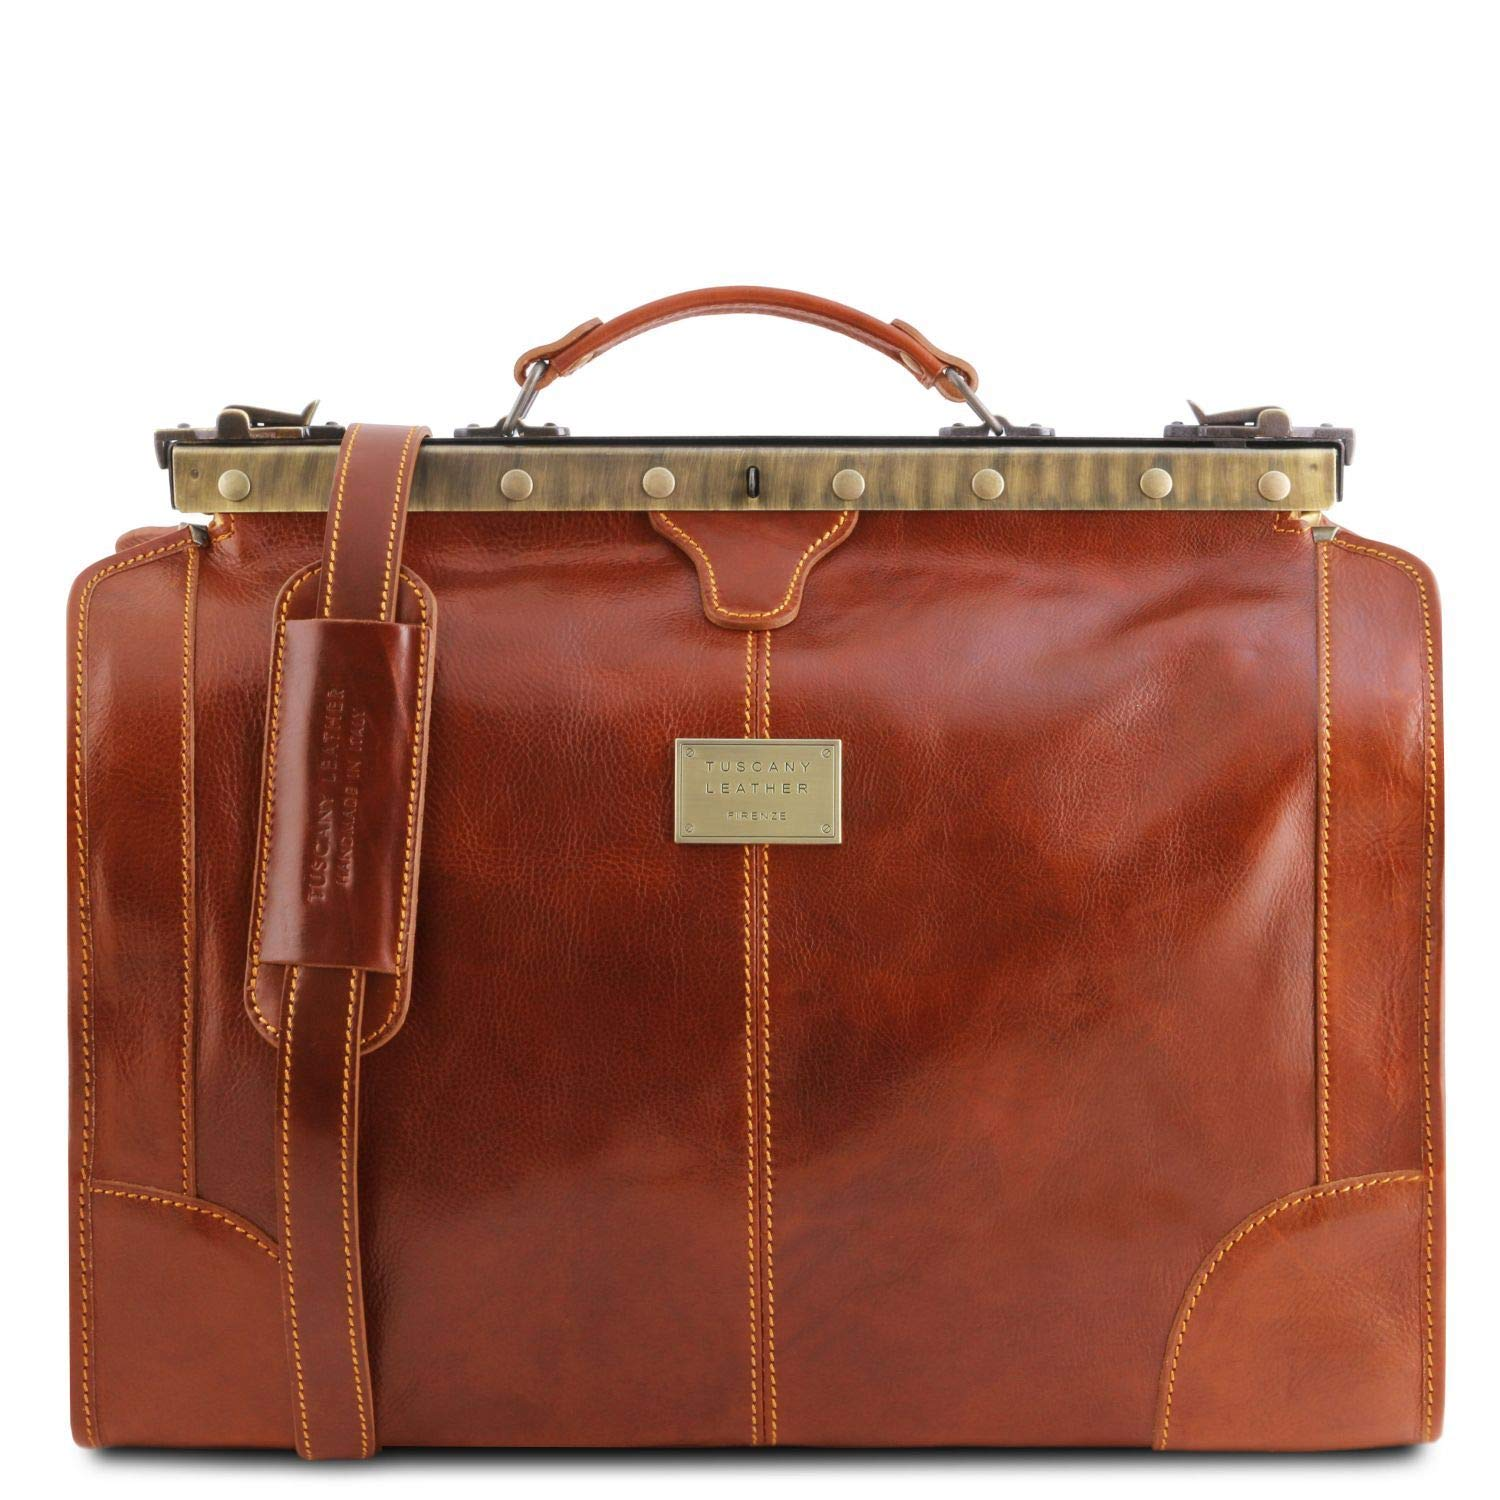 Tuscany Leather Madrid Gladstone Leather Bag – Small size Honey